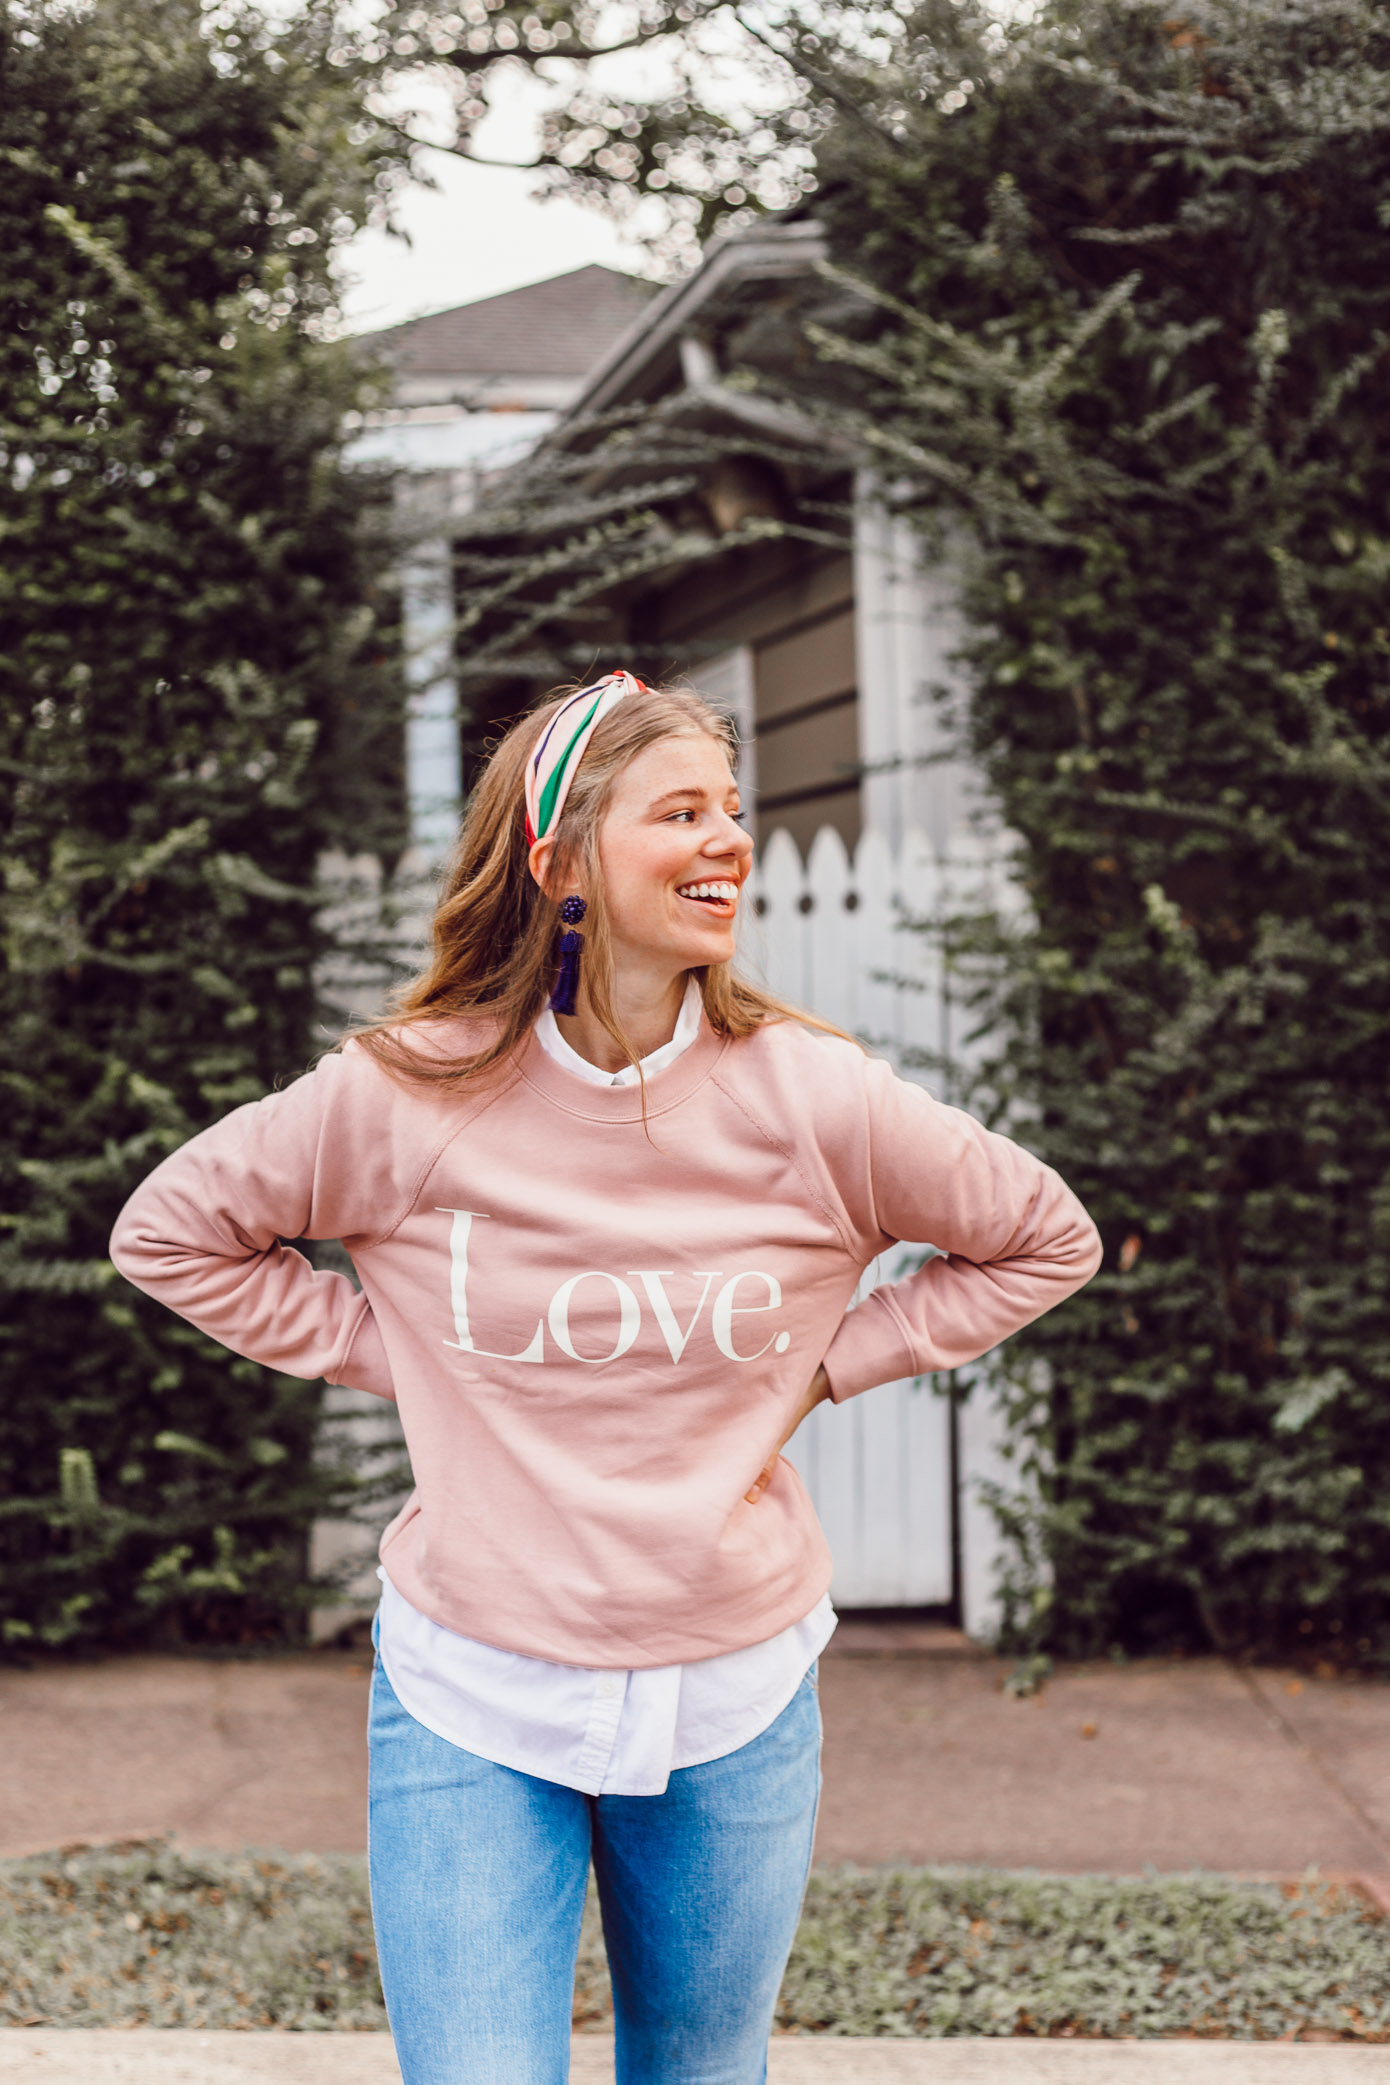 J.Crew Love Graphic Sweatshirt | How to Style a Sweatshirt for a Feminine Look featured on Louella Reese Life & Style Blog